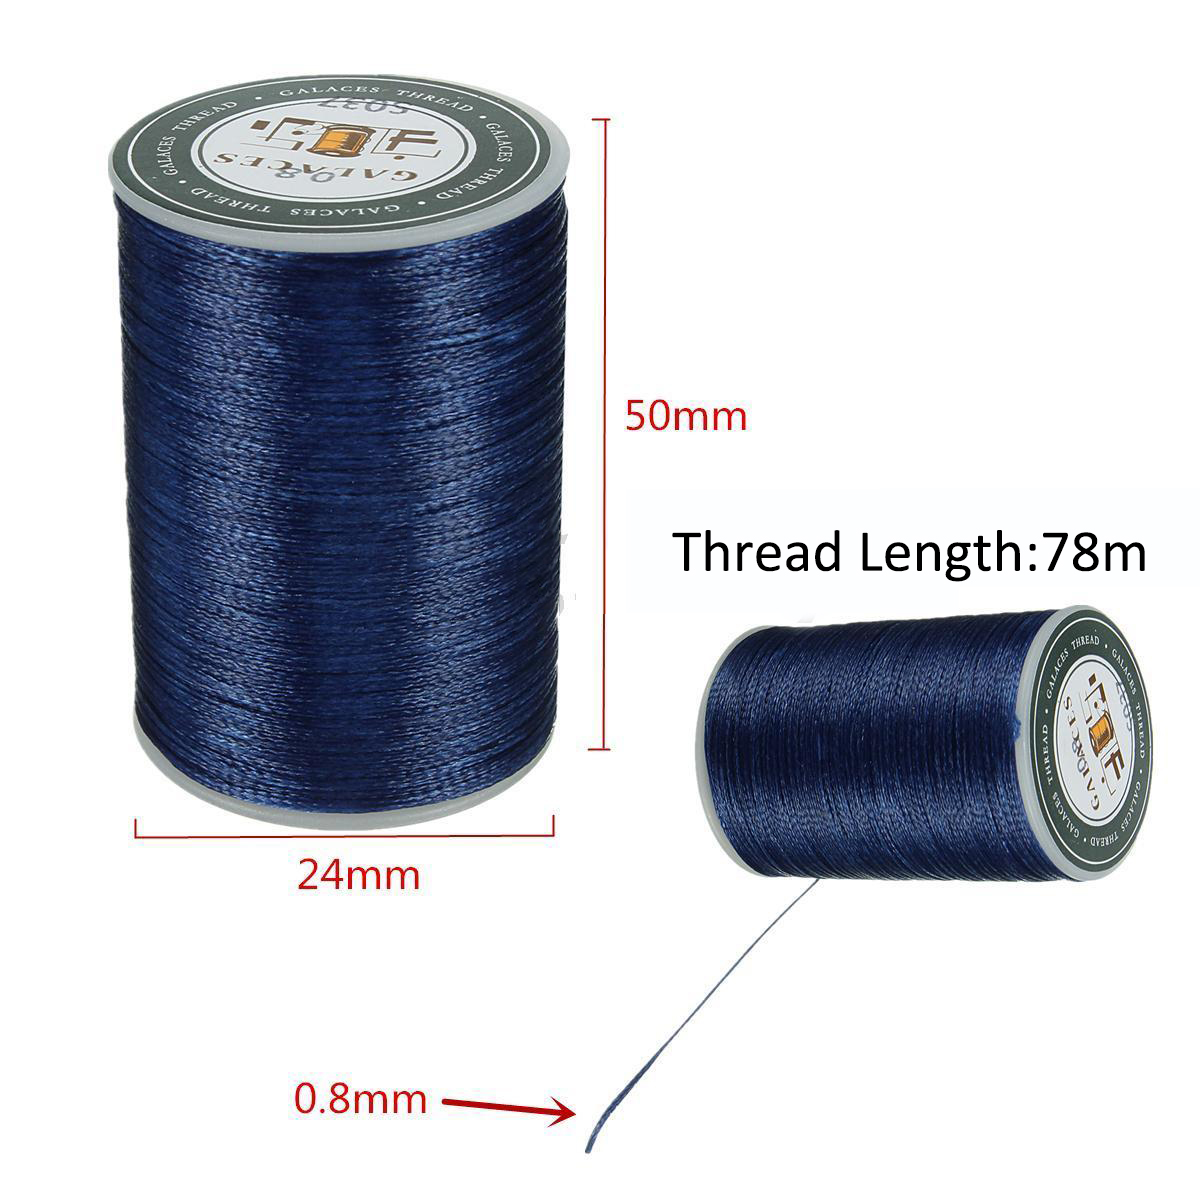 Mayitr Waxed Thread Repair Cord String Sewing Hand Wax Stitching DIY Thread 0.8mm* 78m For Leather Goods Shoes Hats Crafts